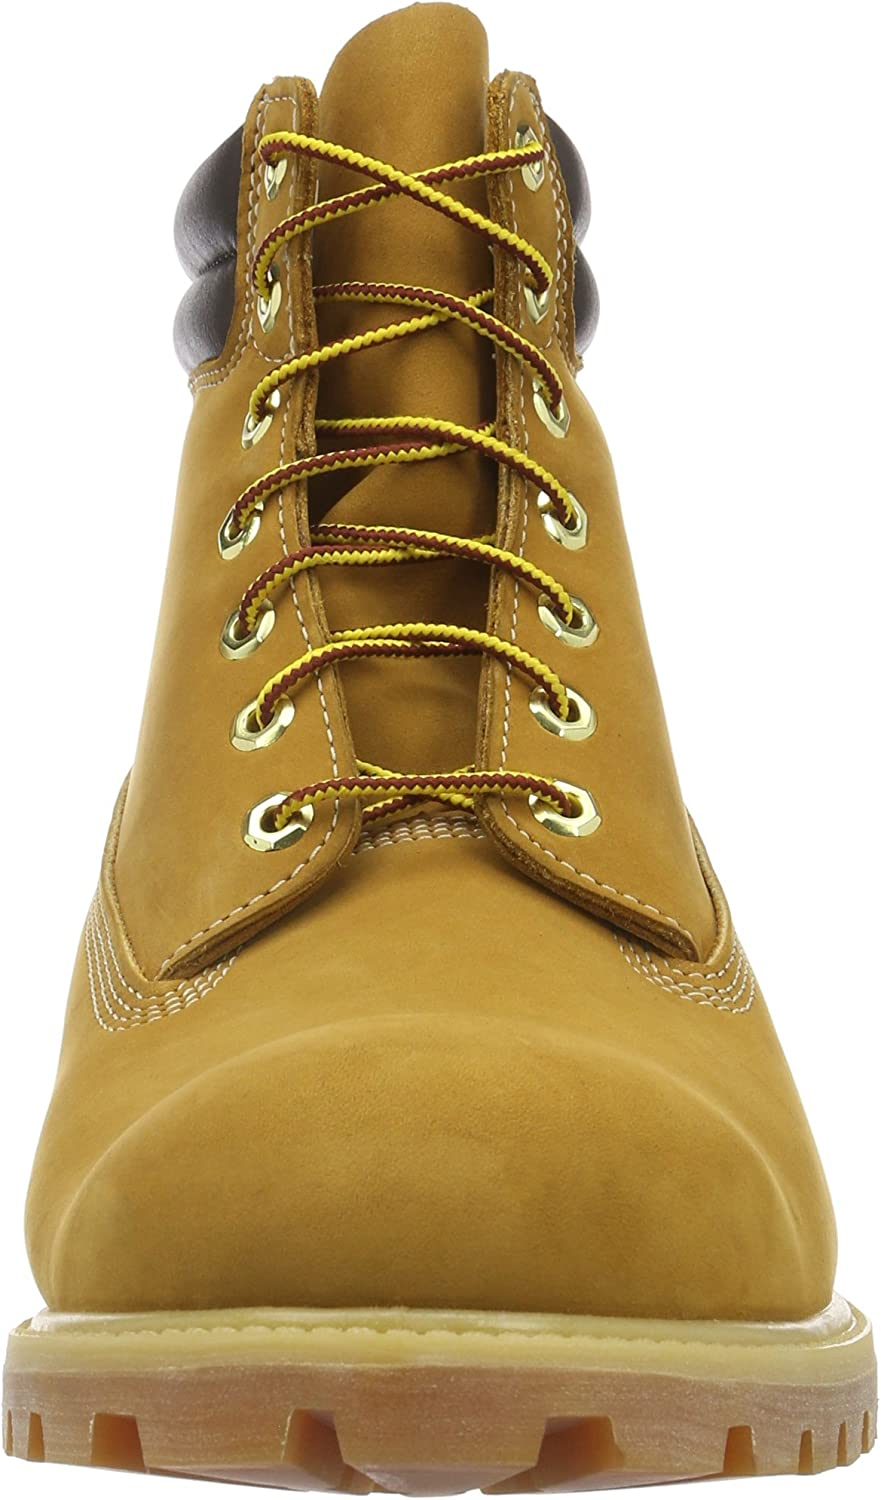   Timberland Men's 6 in Double Collar Boot Ankle   Oxford & Derby